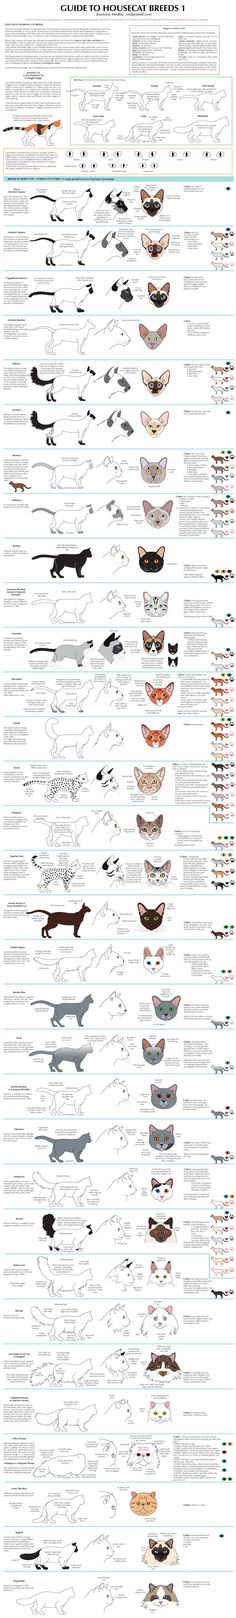 orig04.deviantart.net 0131 f 2016 063 c 8 guide_to_housecat_breeds_1_by_majnouna-d2rmfml.jpg